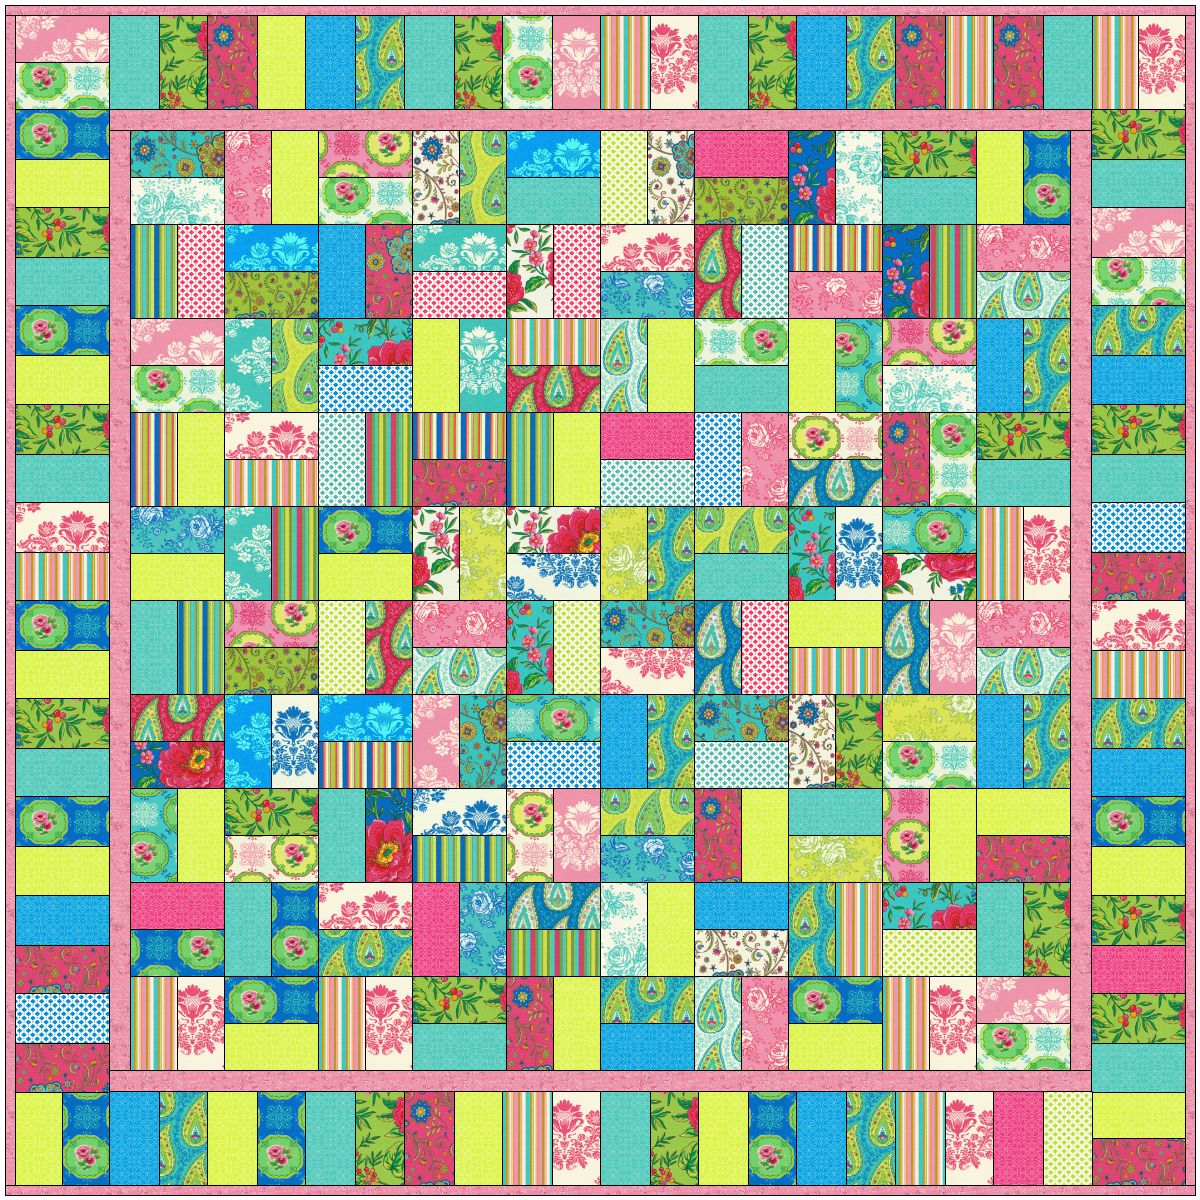 Sew And Tell Designing Quilts In EQ7